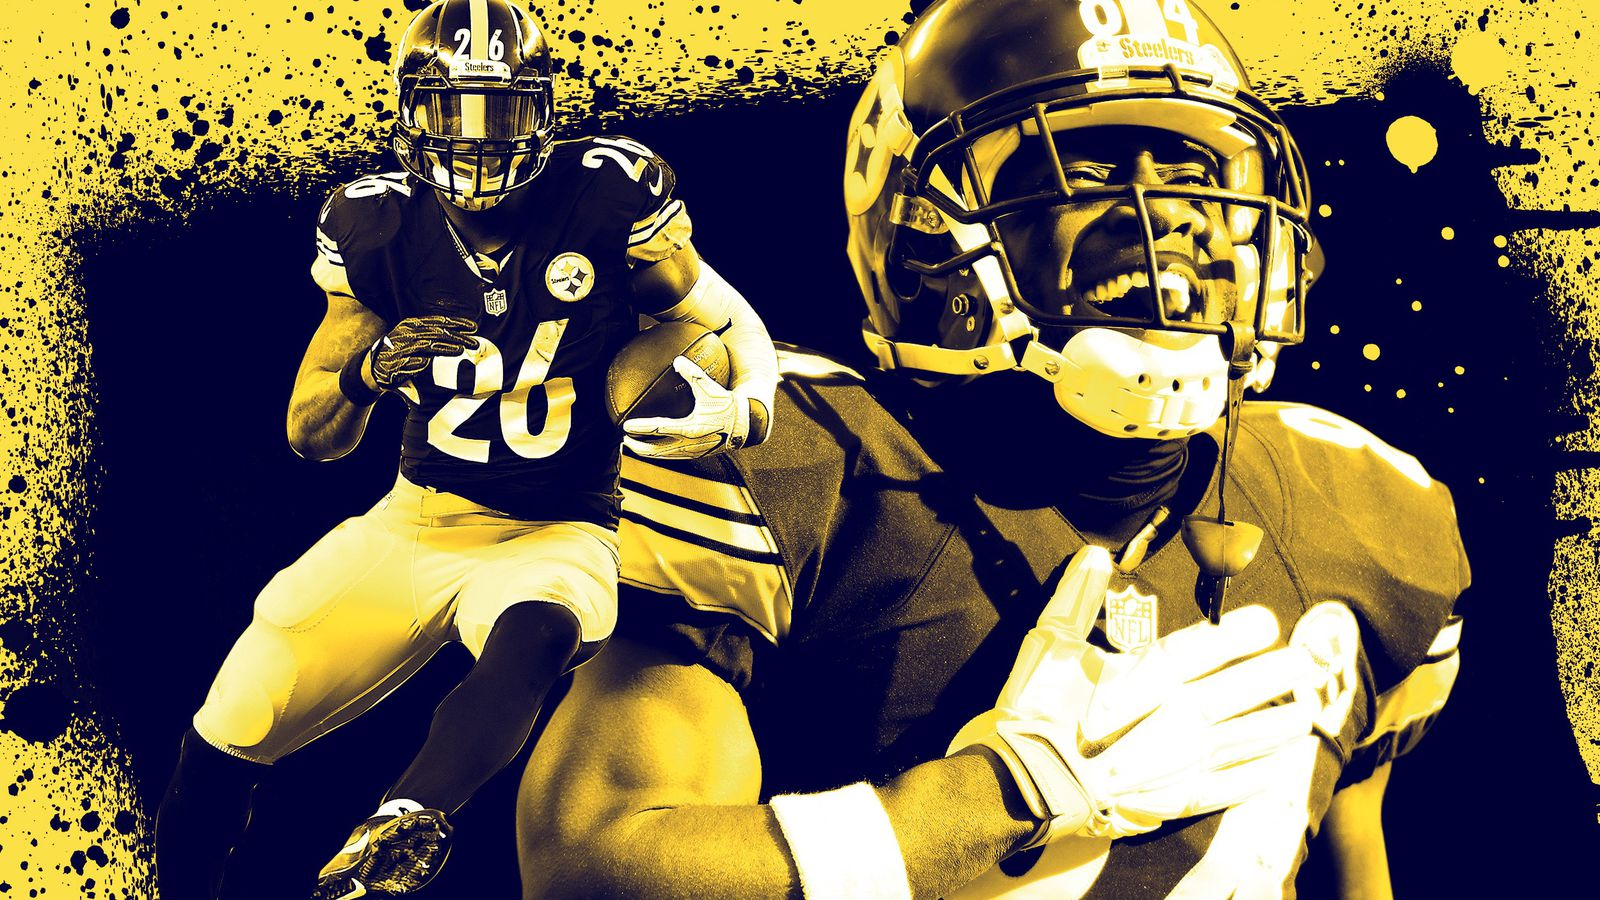 Pittsburgh Steelers Wallpaper Hd The Steelers Aren T Messing Around The Ringer